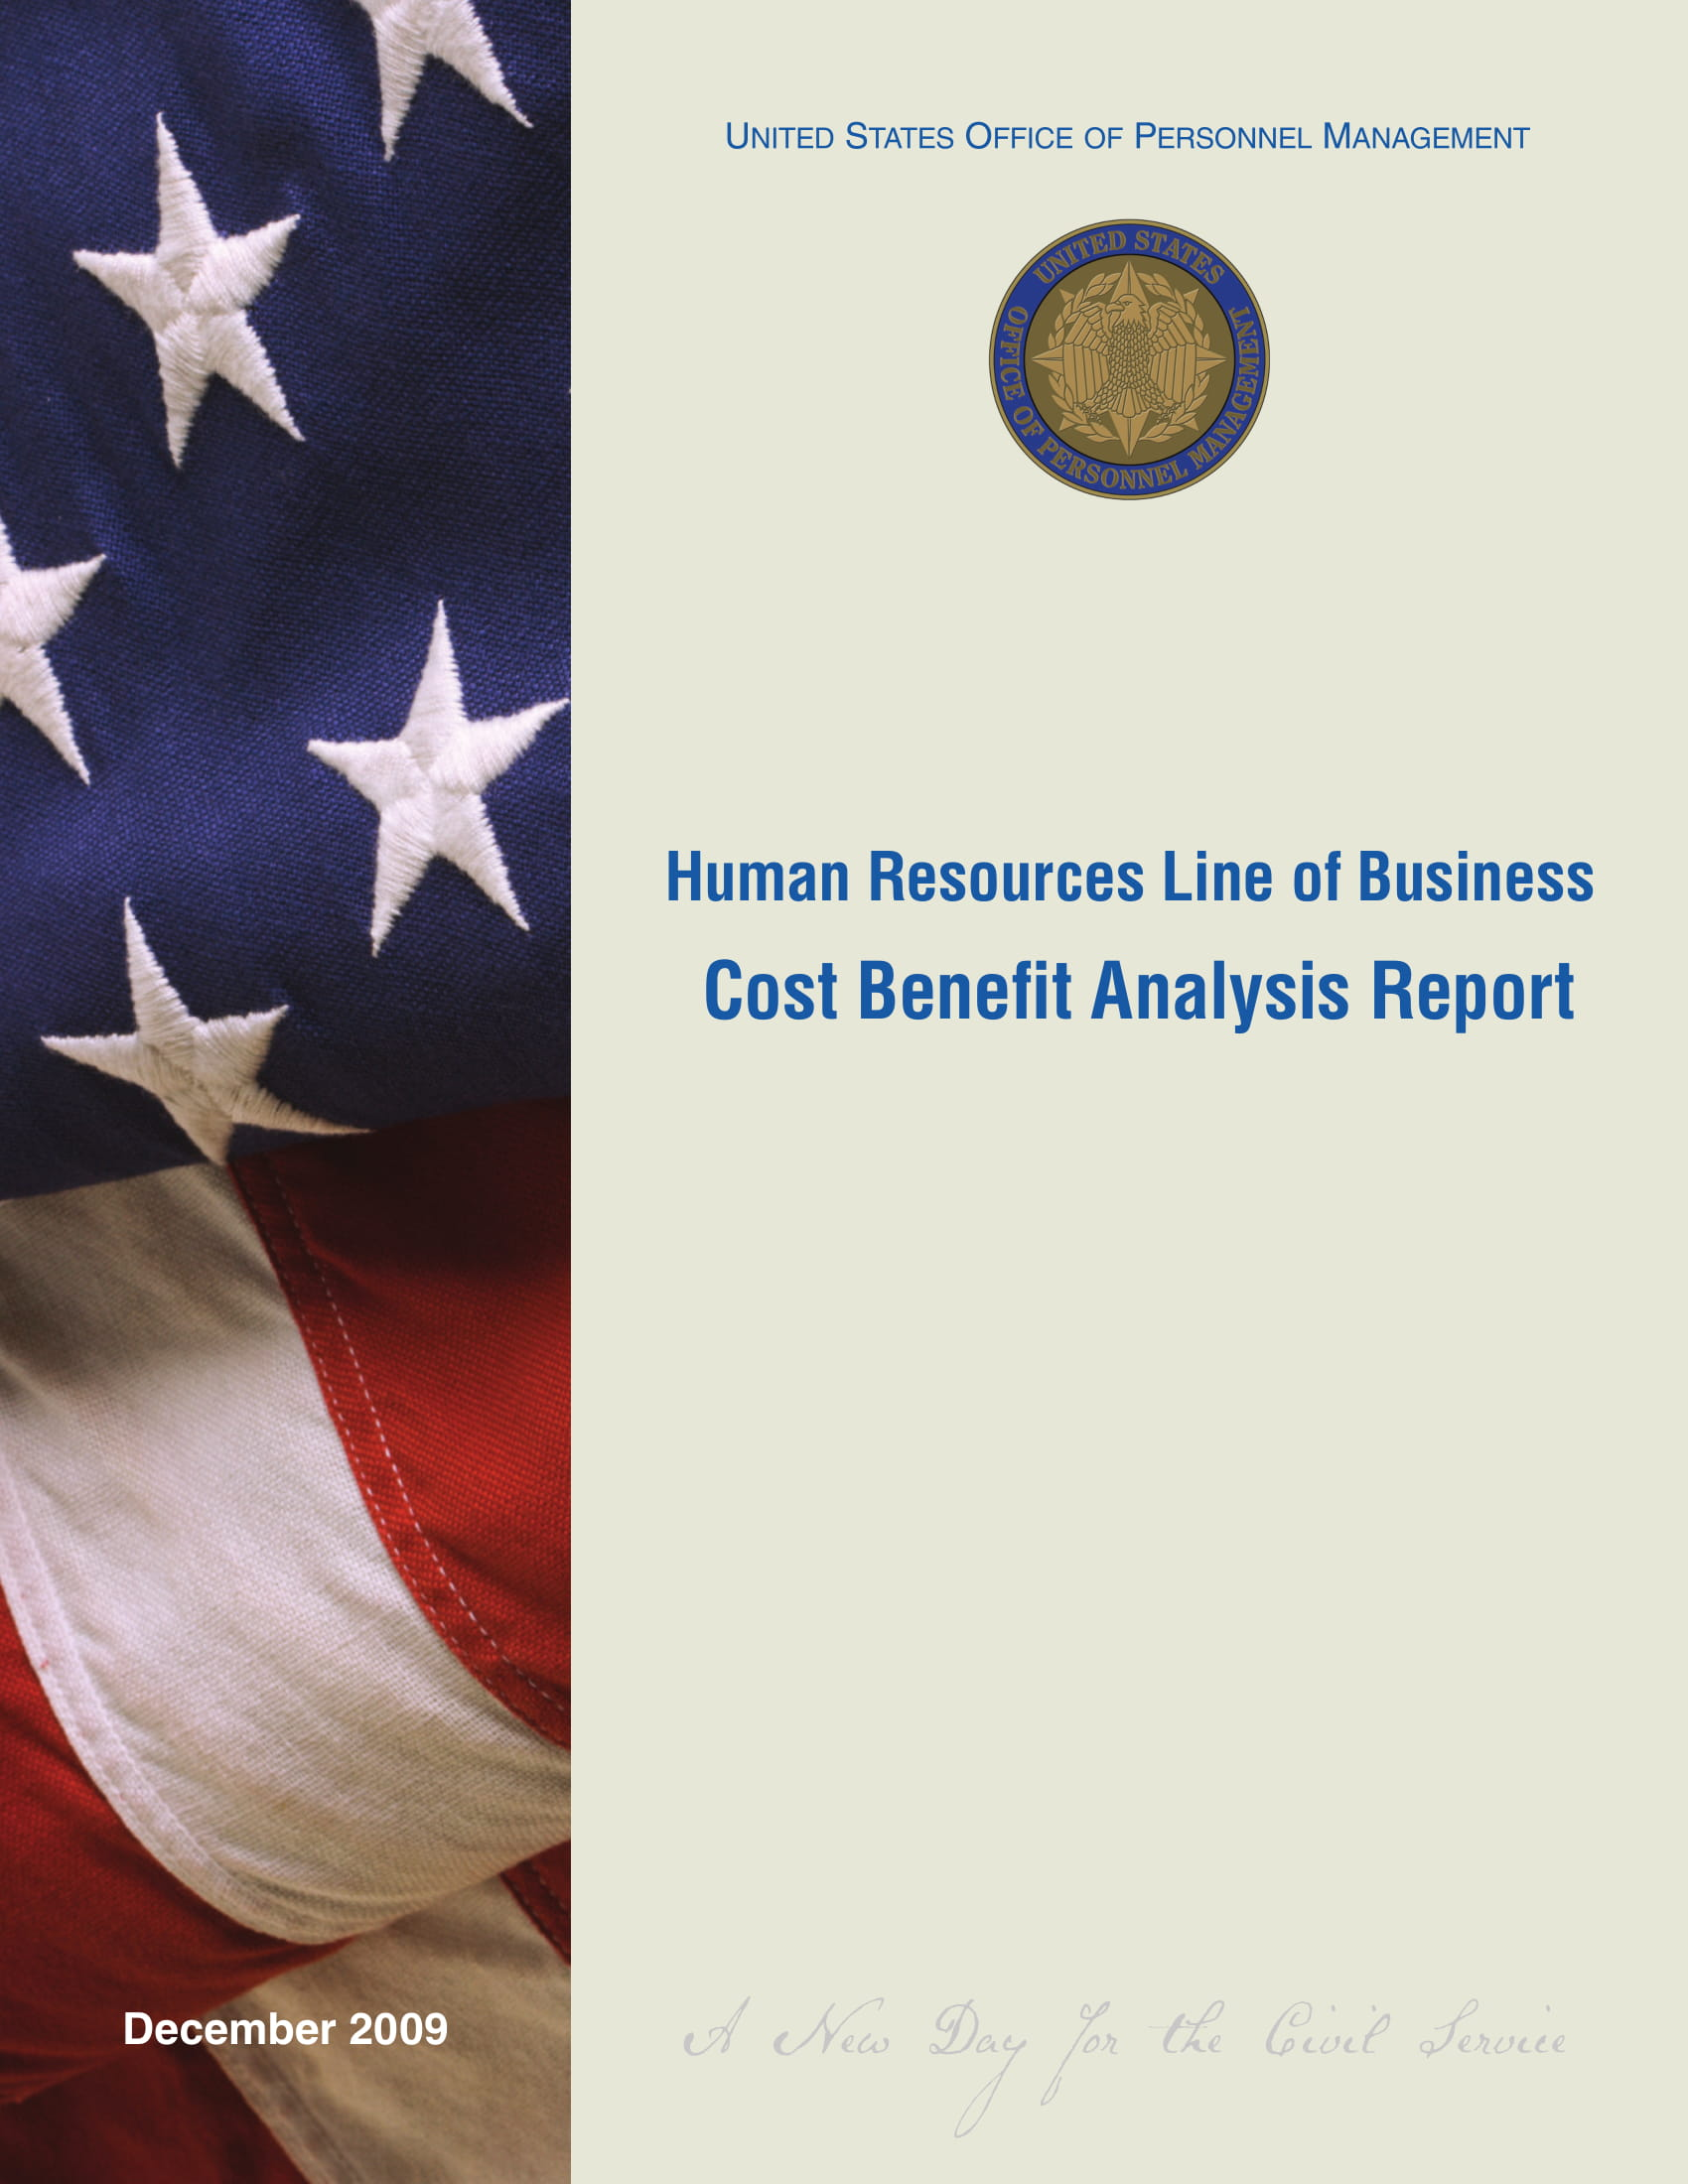 cost benefit analysis report example